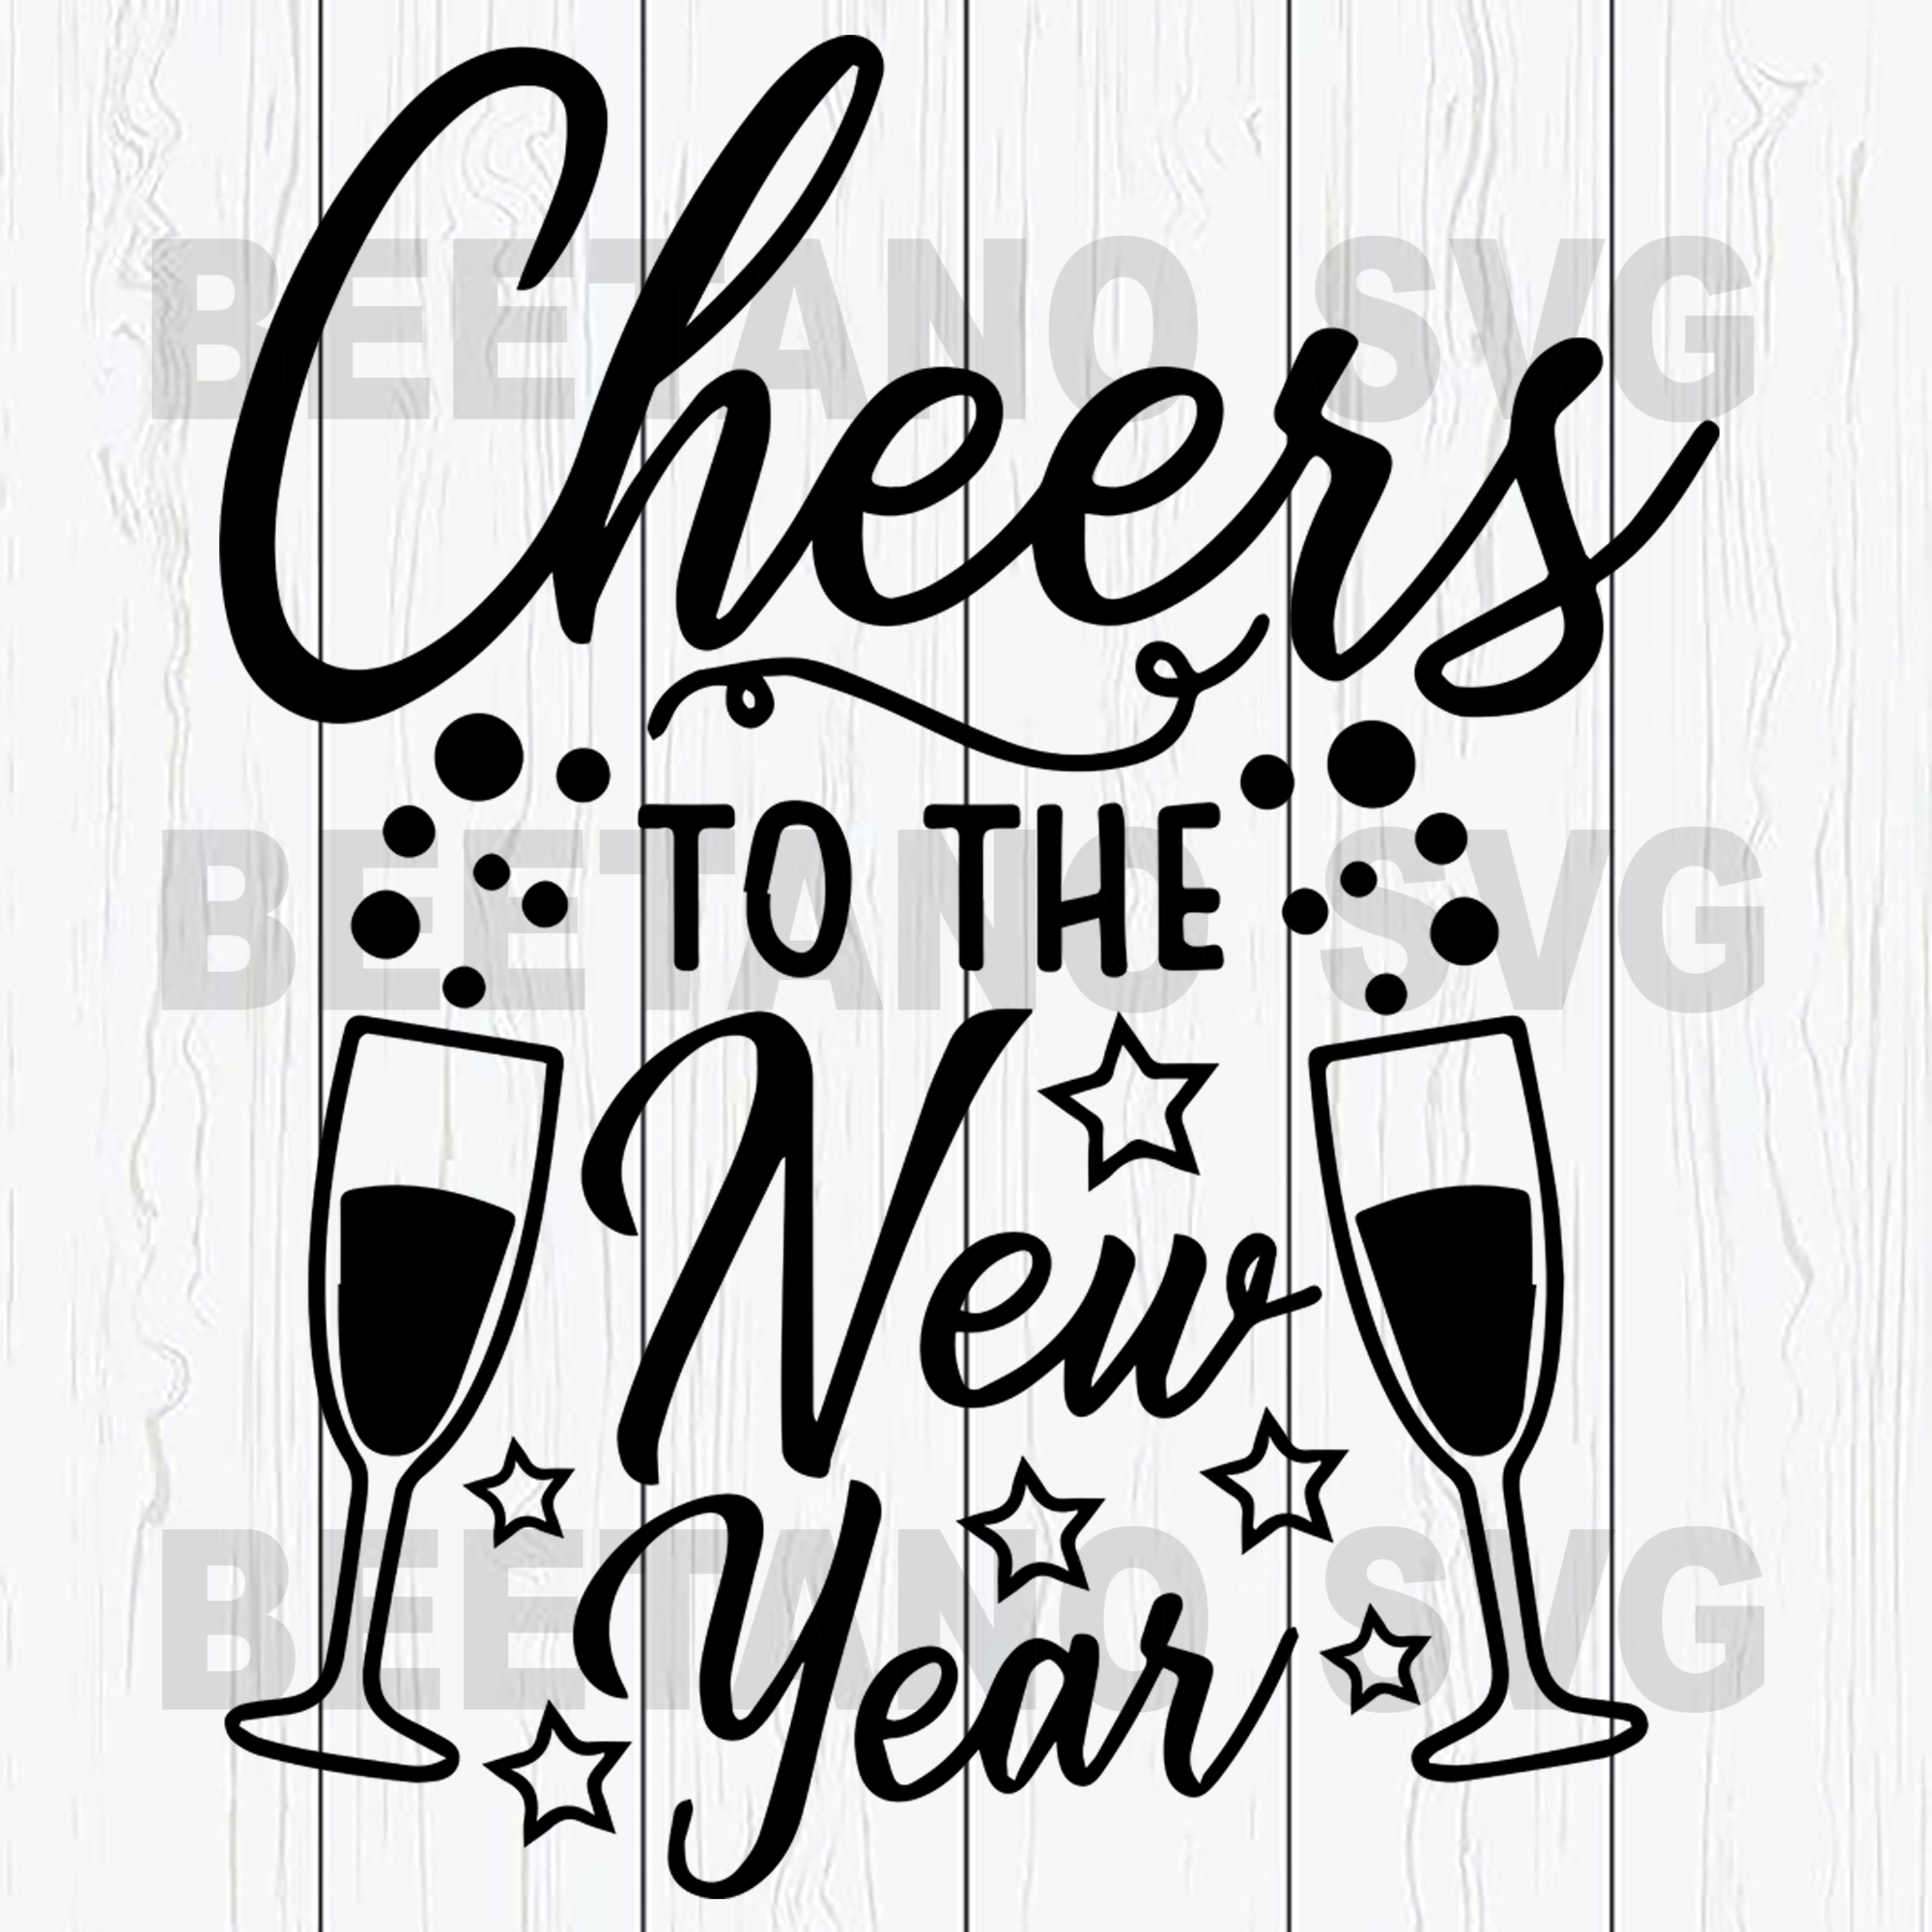 Cheer to the new year